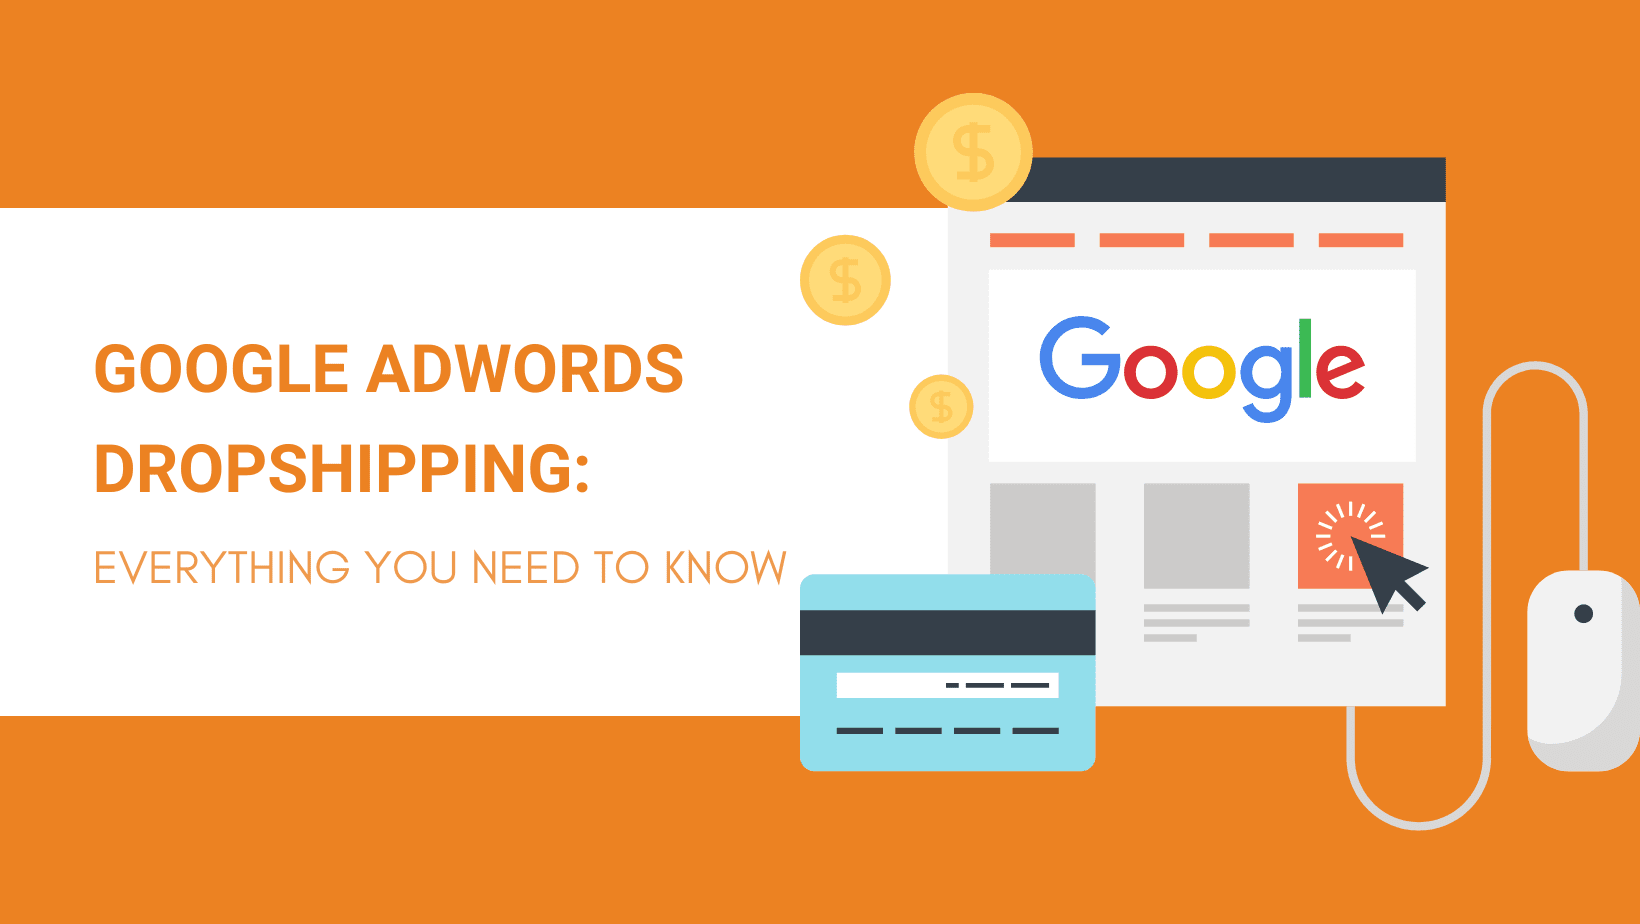 GOOGLE ADWORDS DROPSHIPPING EVERYTHING YOU NEED TO KNOW